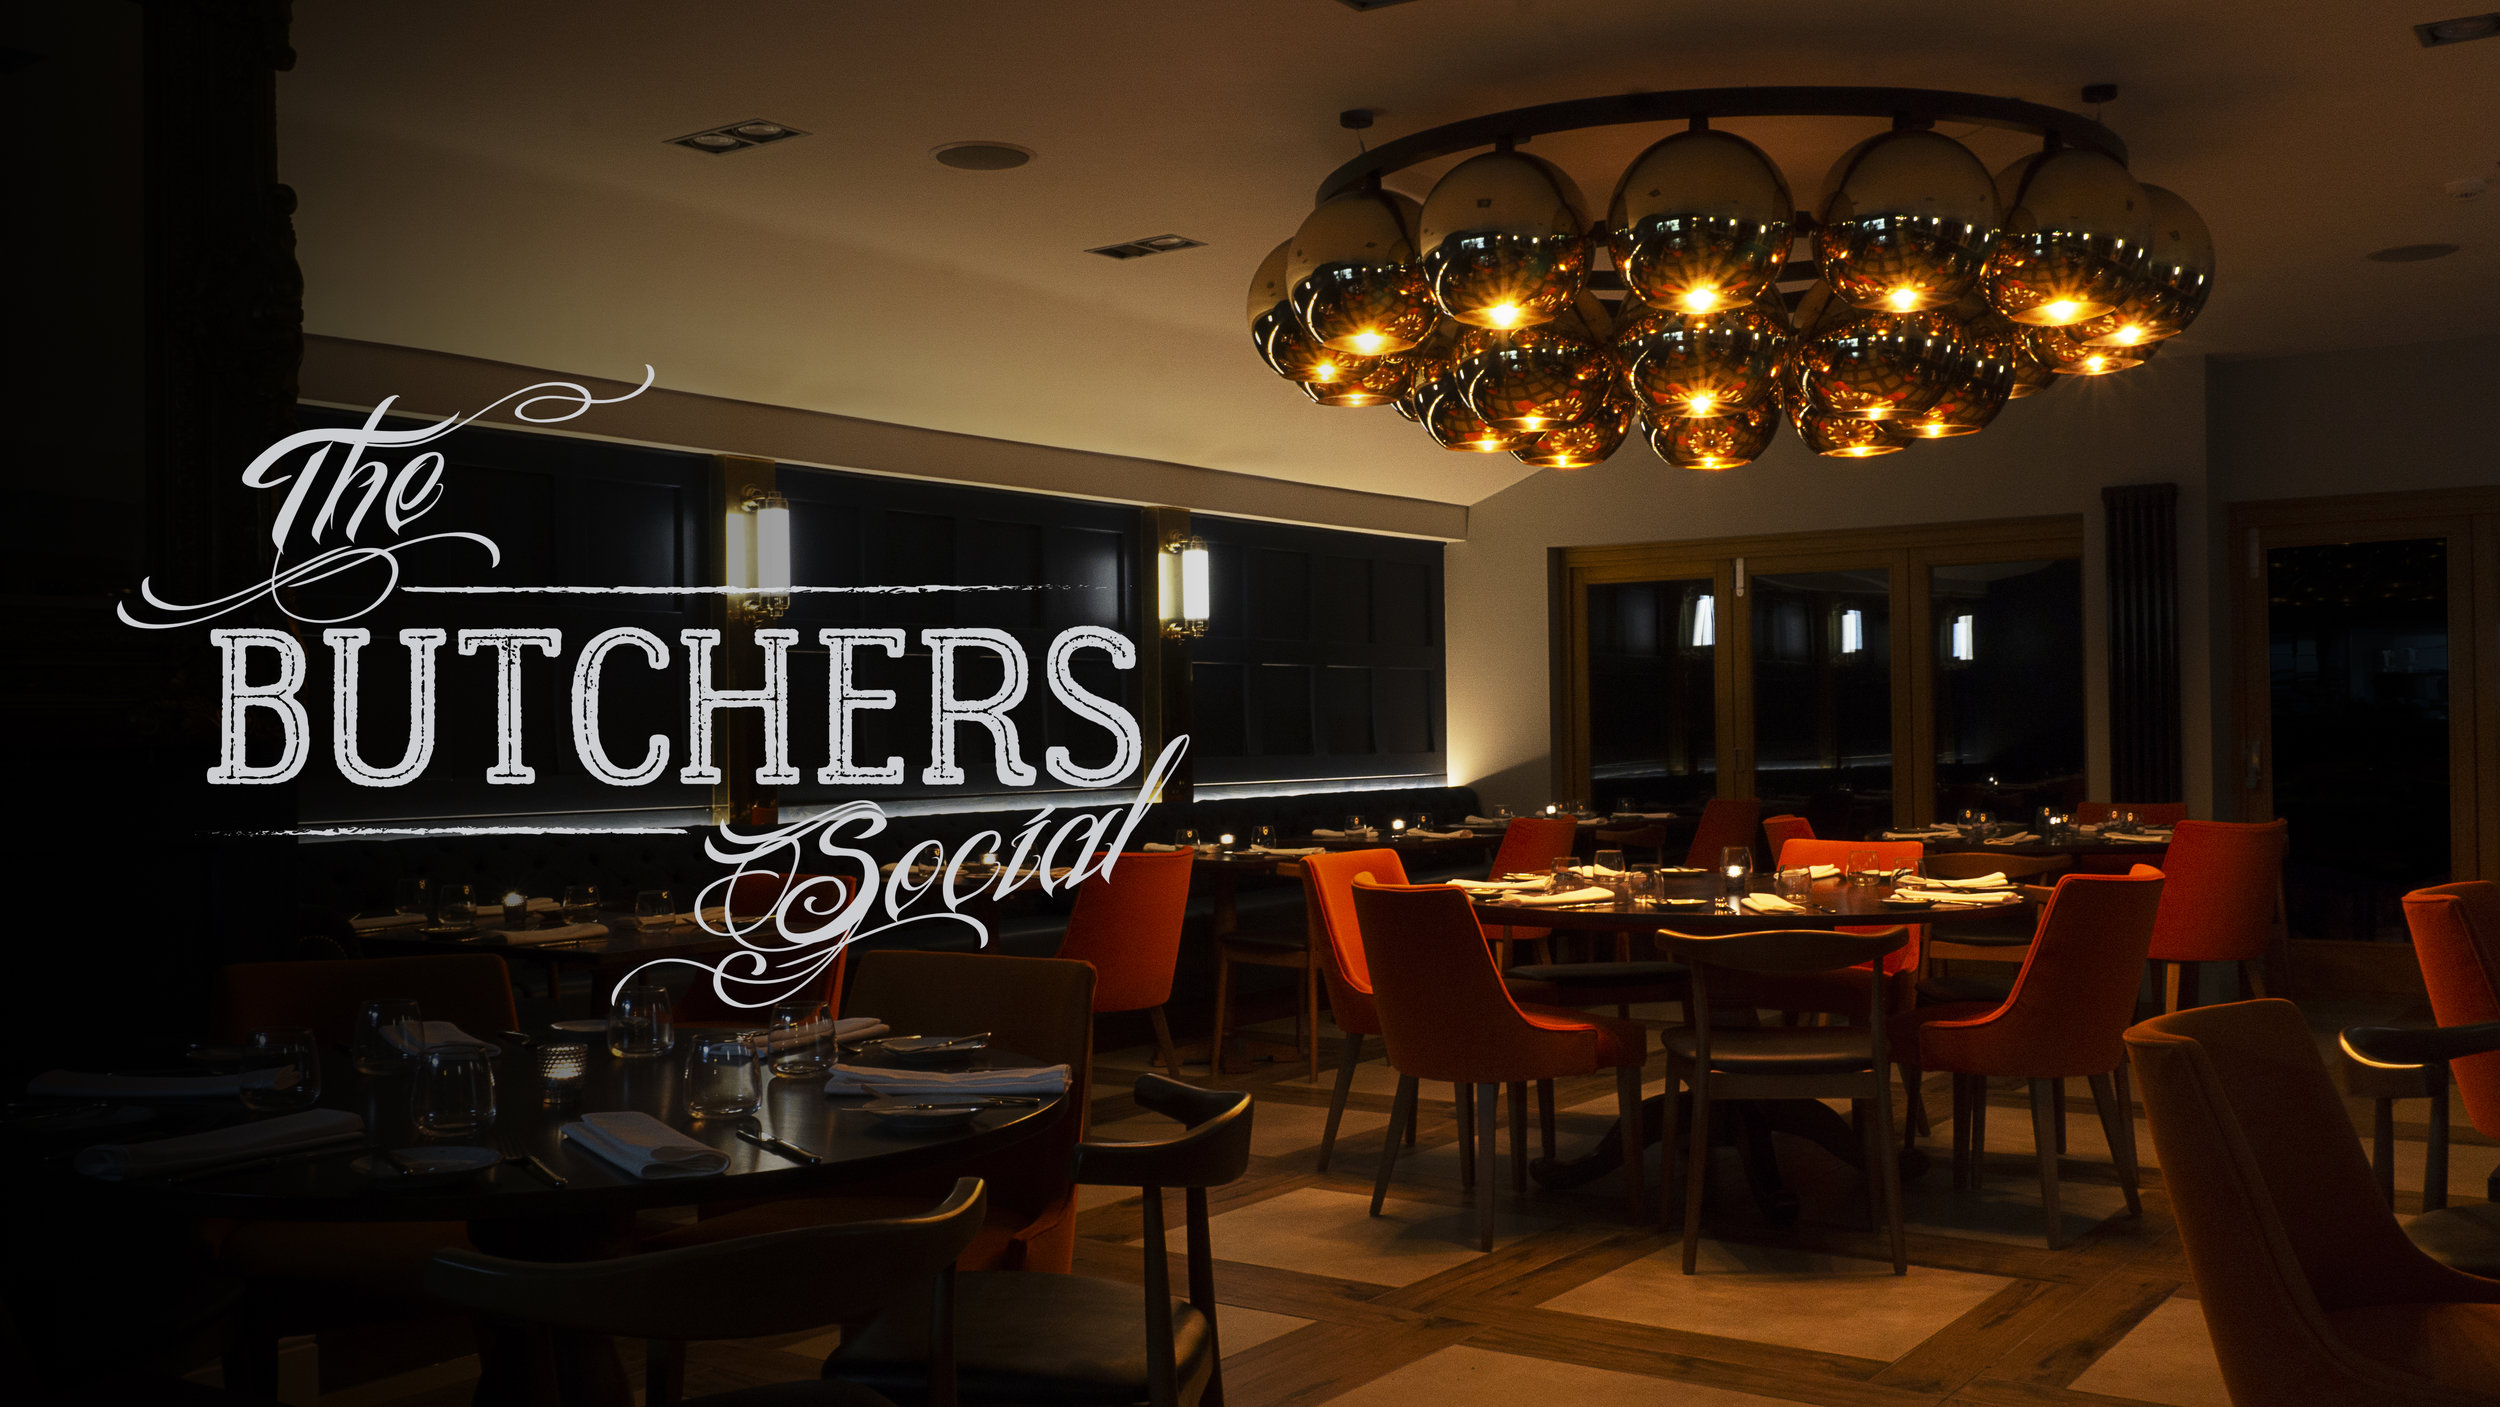 THE BUTCHERS SOCIAL CASE STUDY